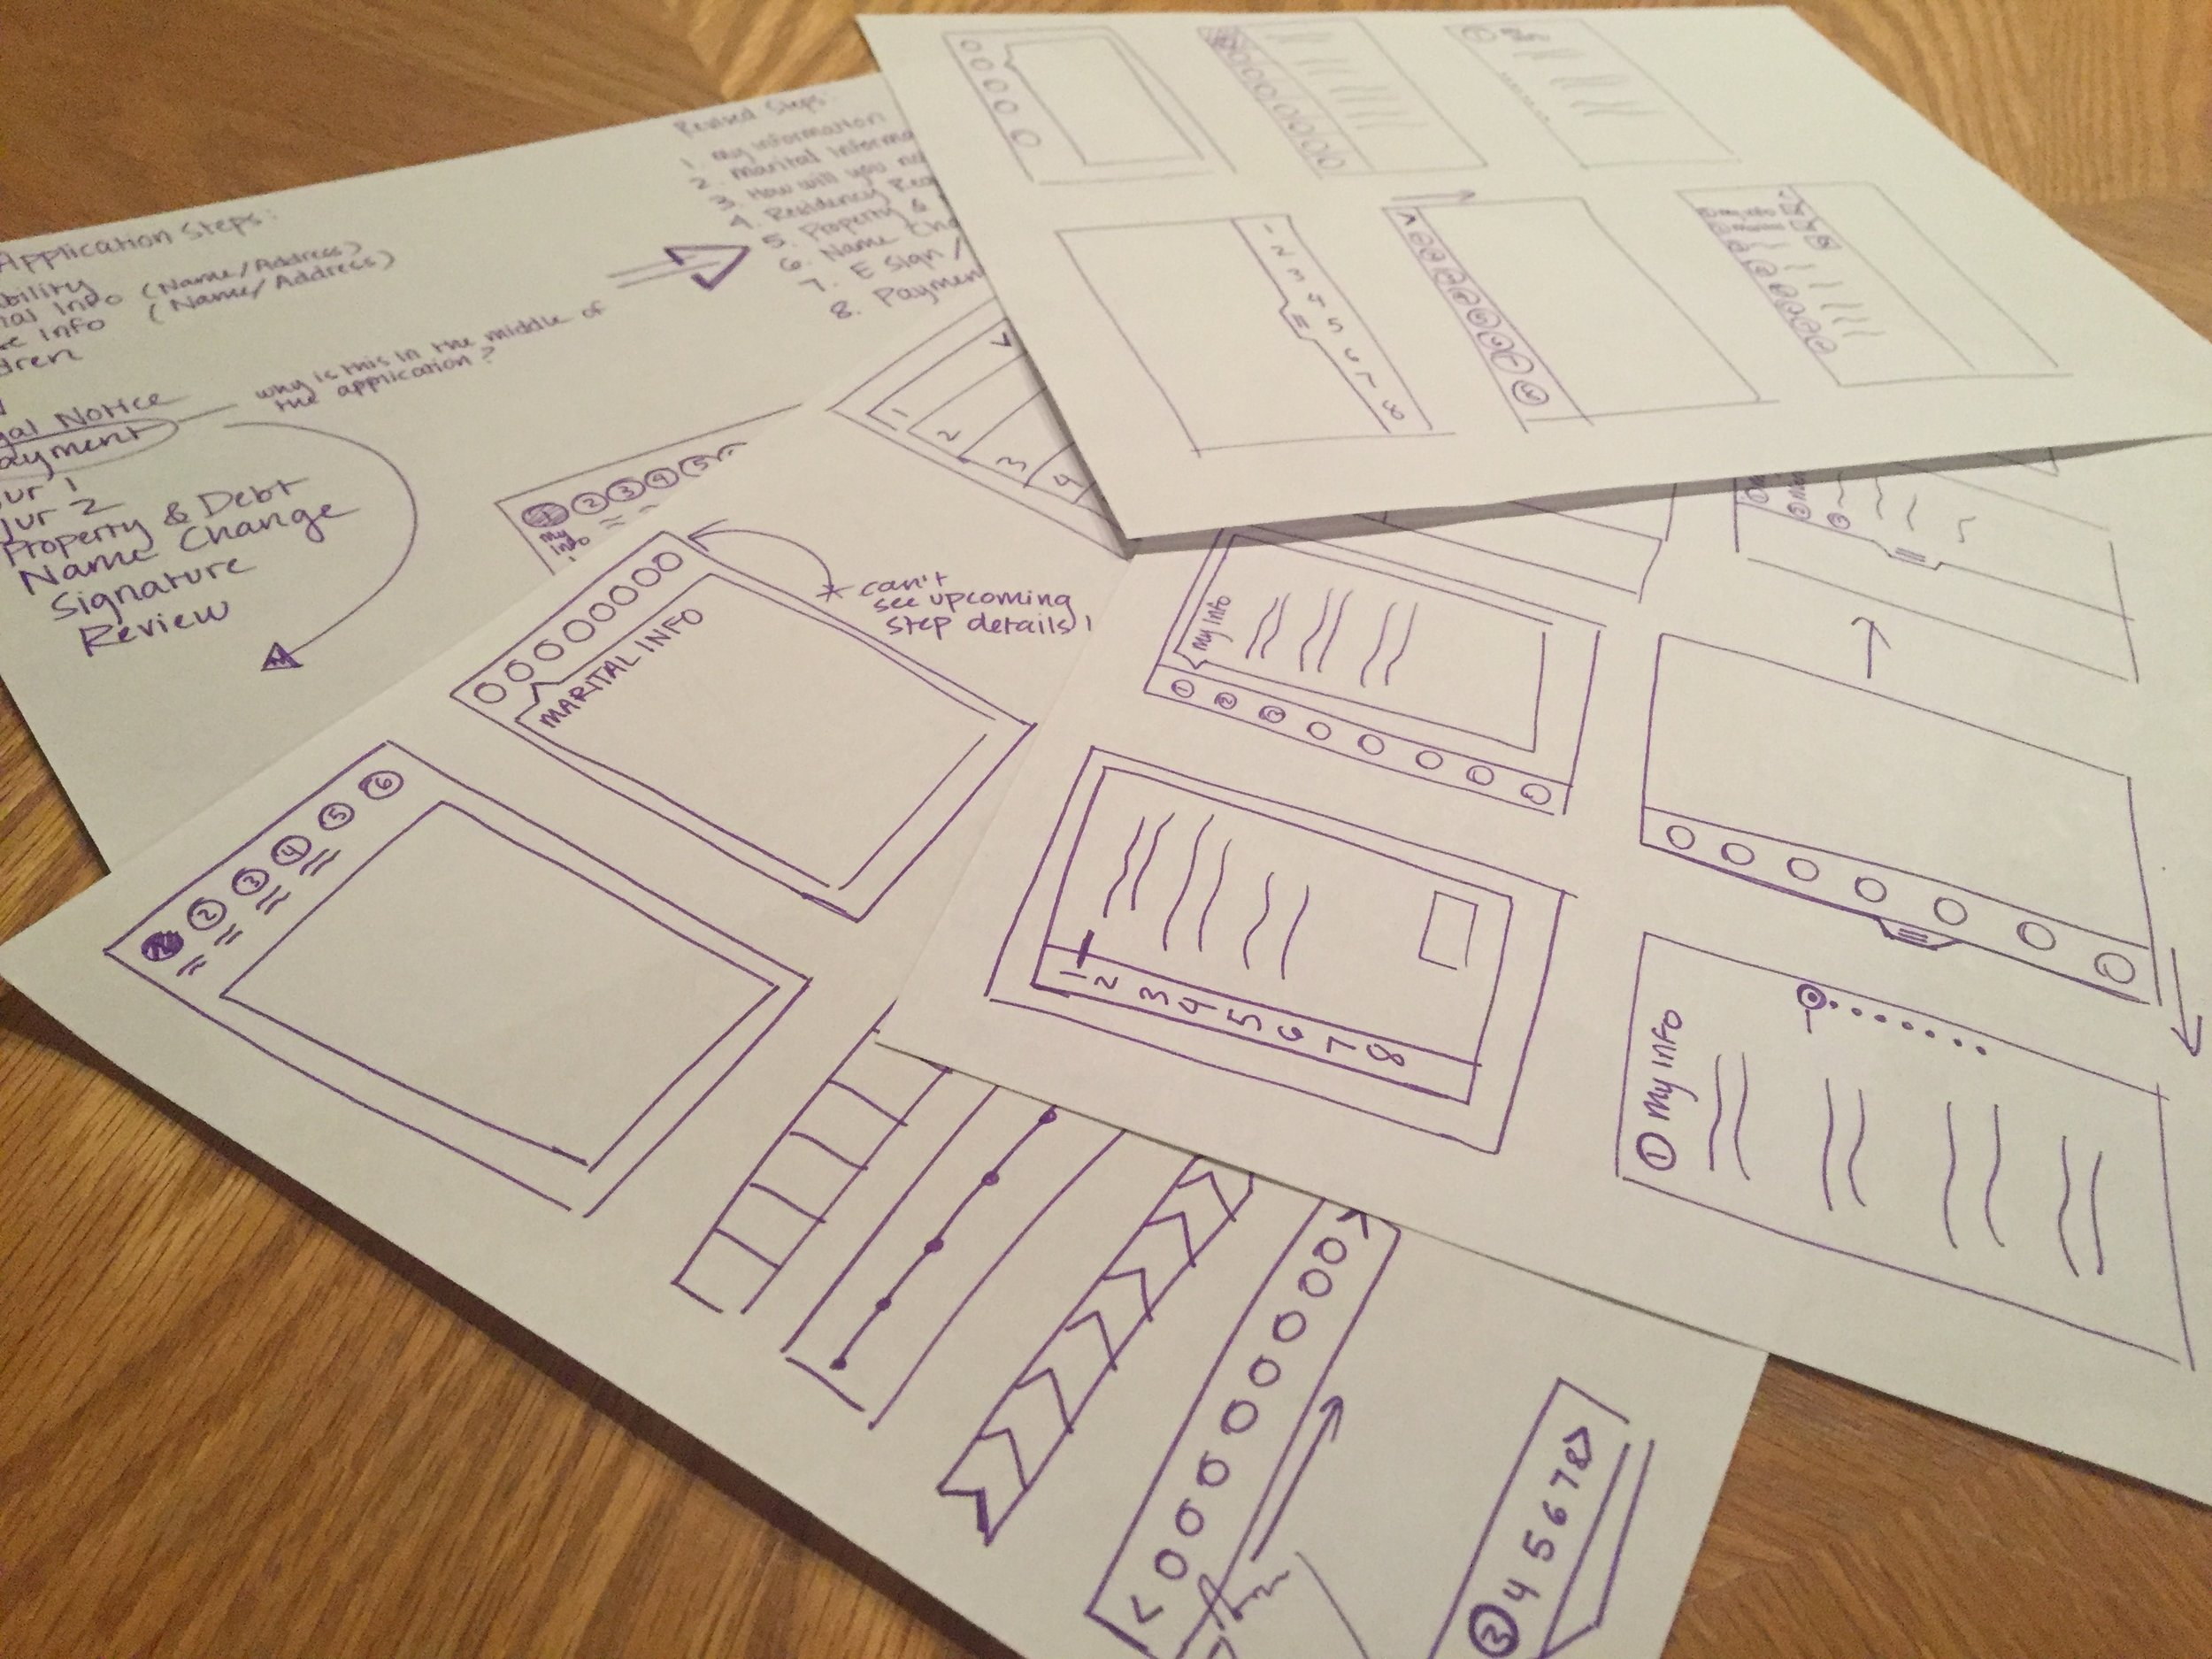 Our team brainstormed several iterations of possible navigation bars.